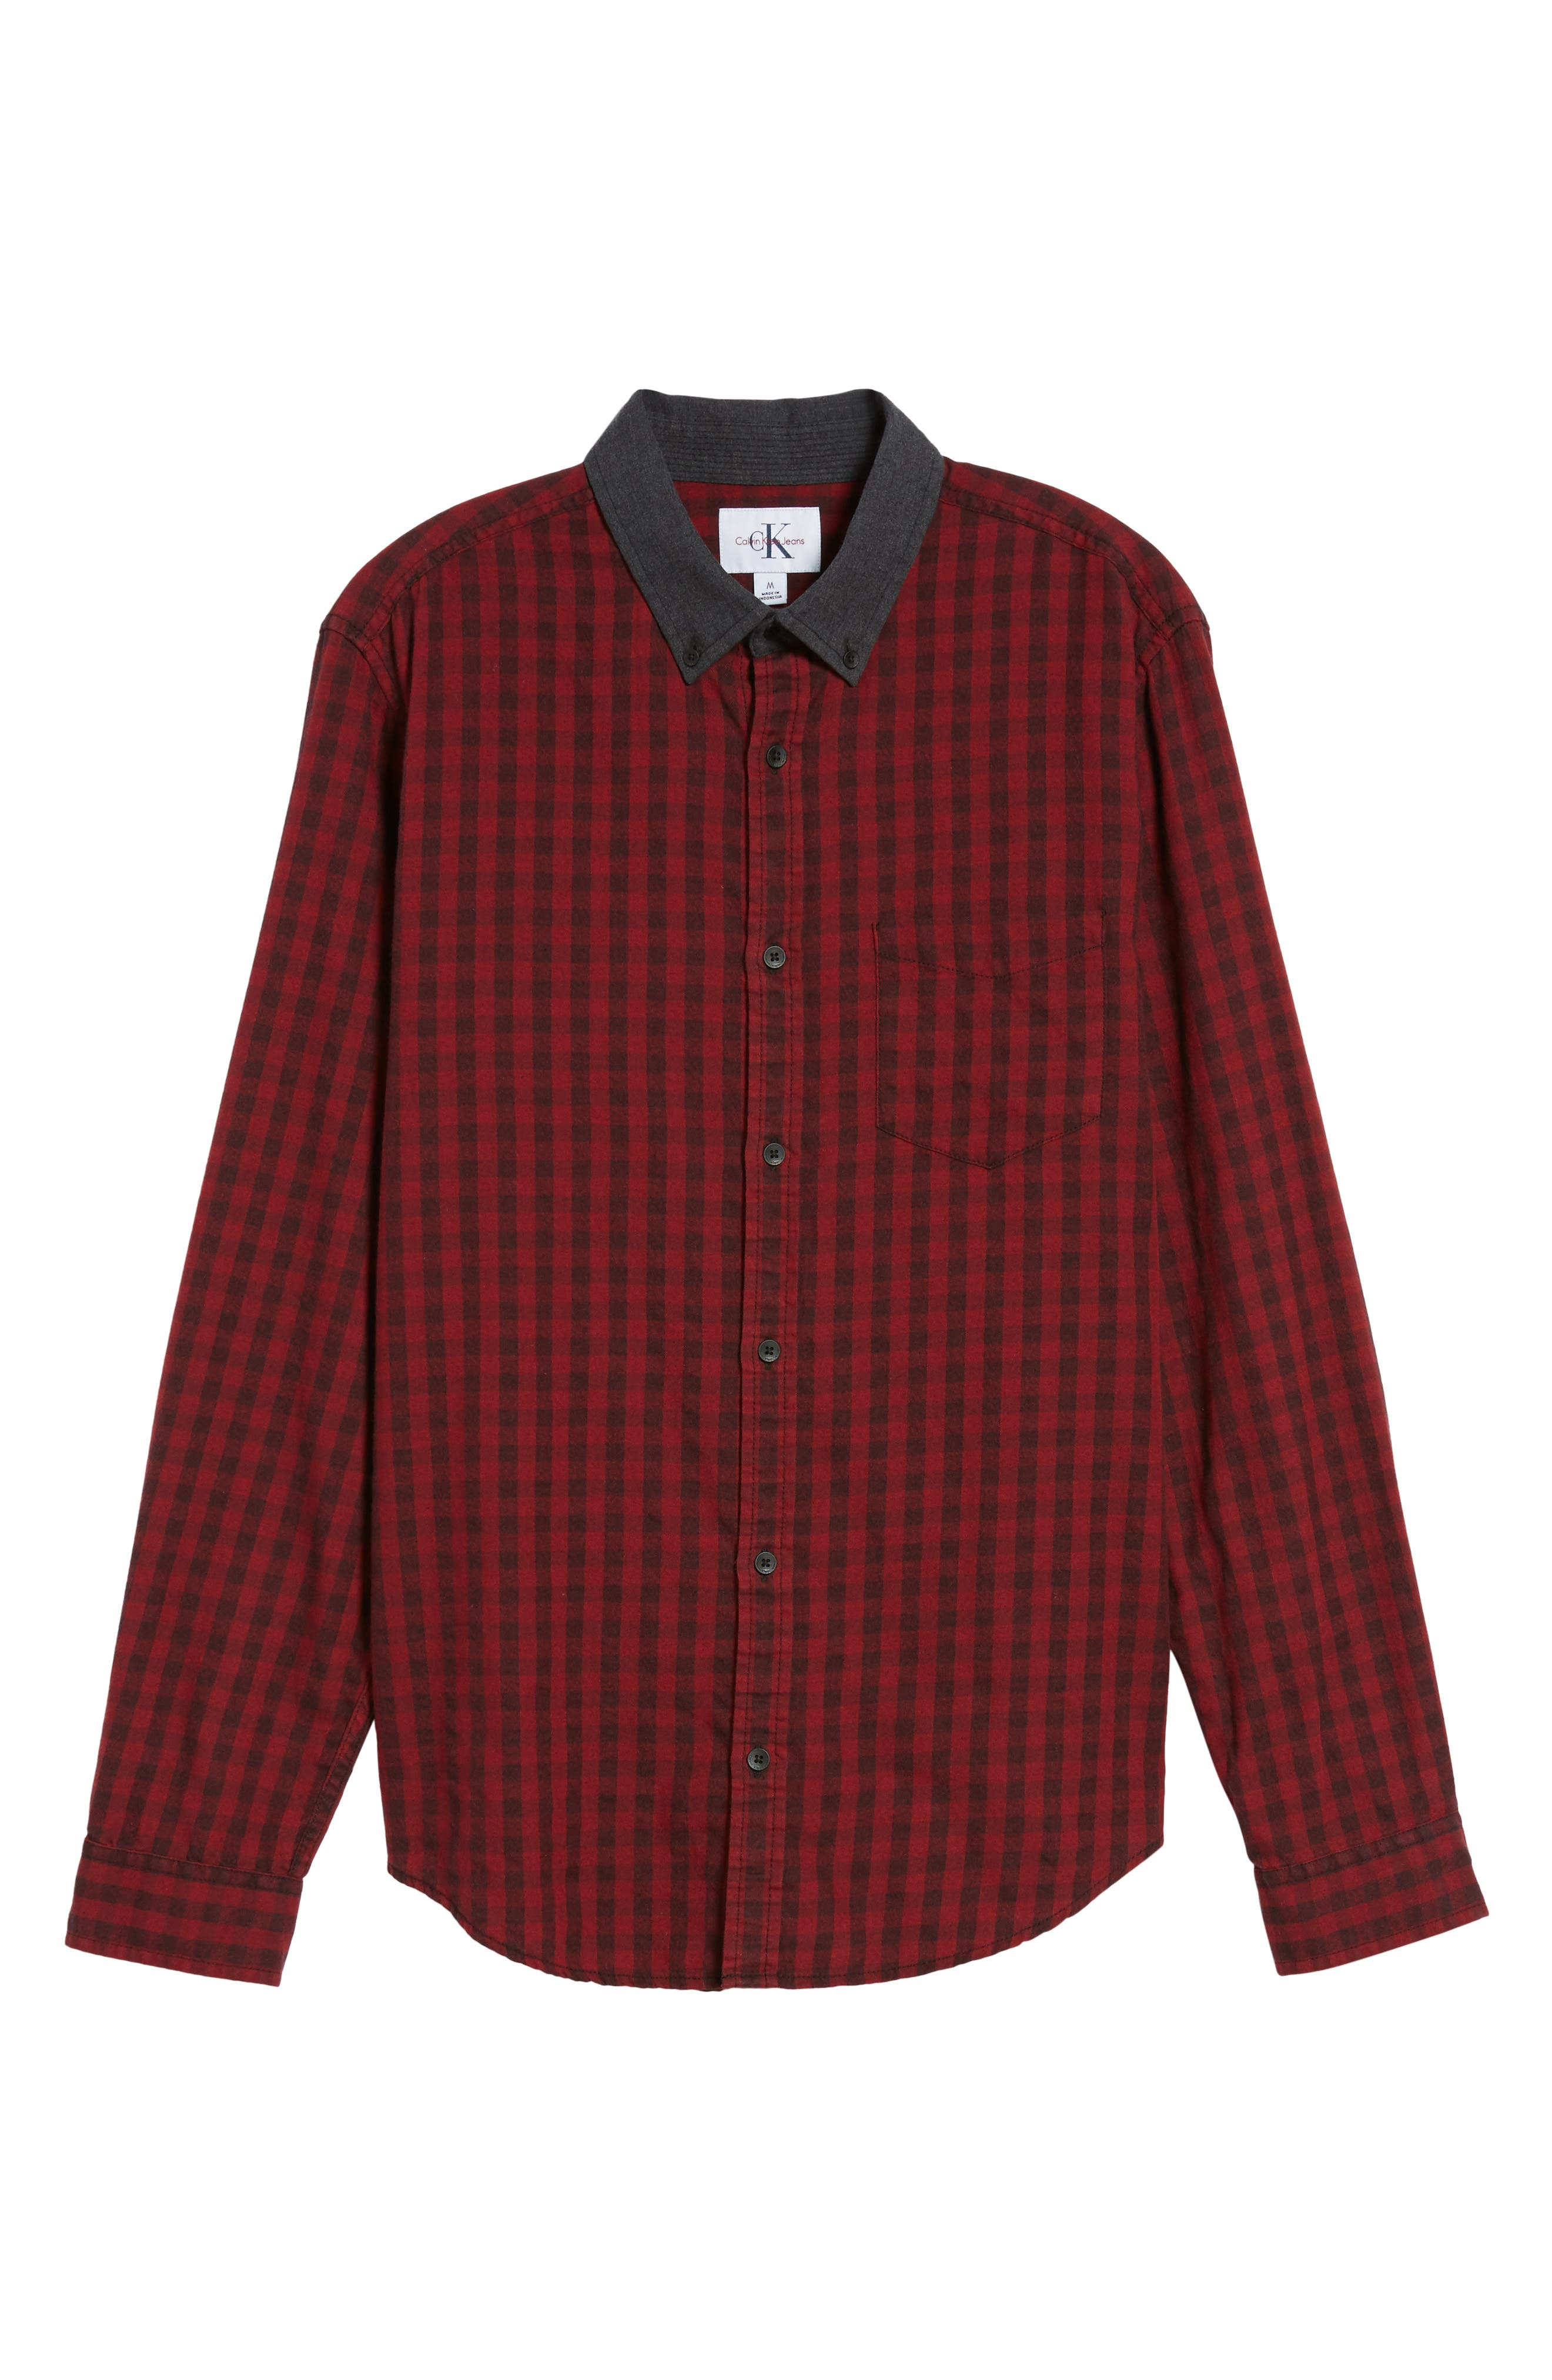 Barn Flannel Shirt,                             Alternate thumbnail 6, color,                             621